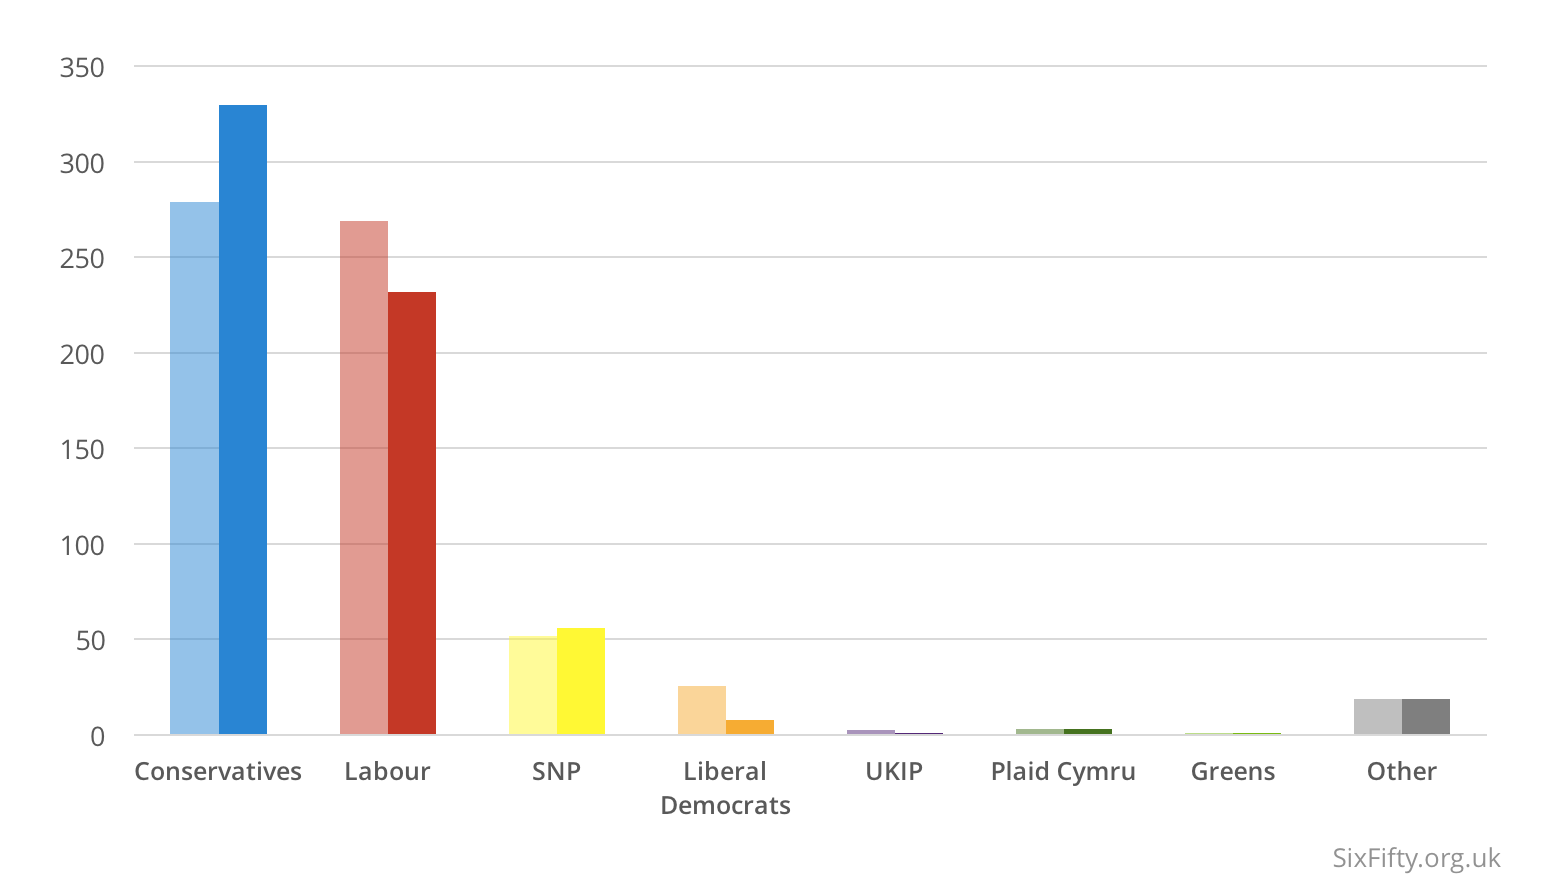 Average forecast (left) vs actual results (right) for the 2015 general election